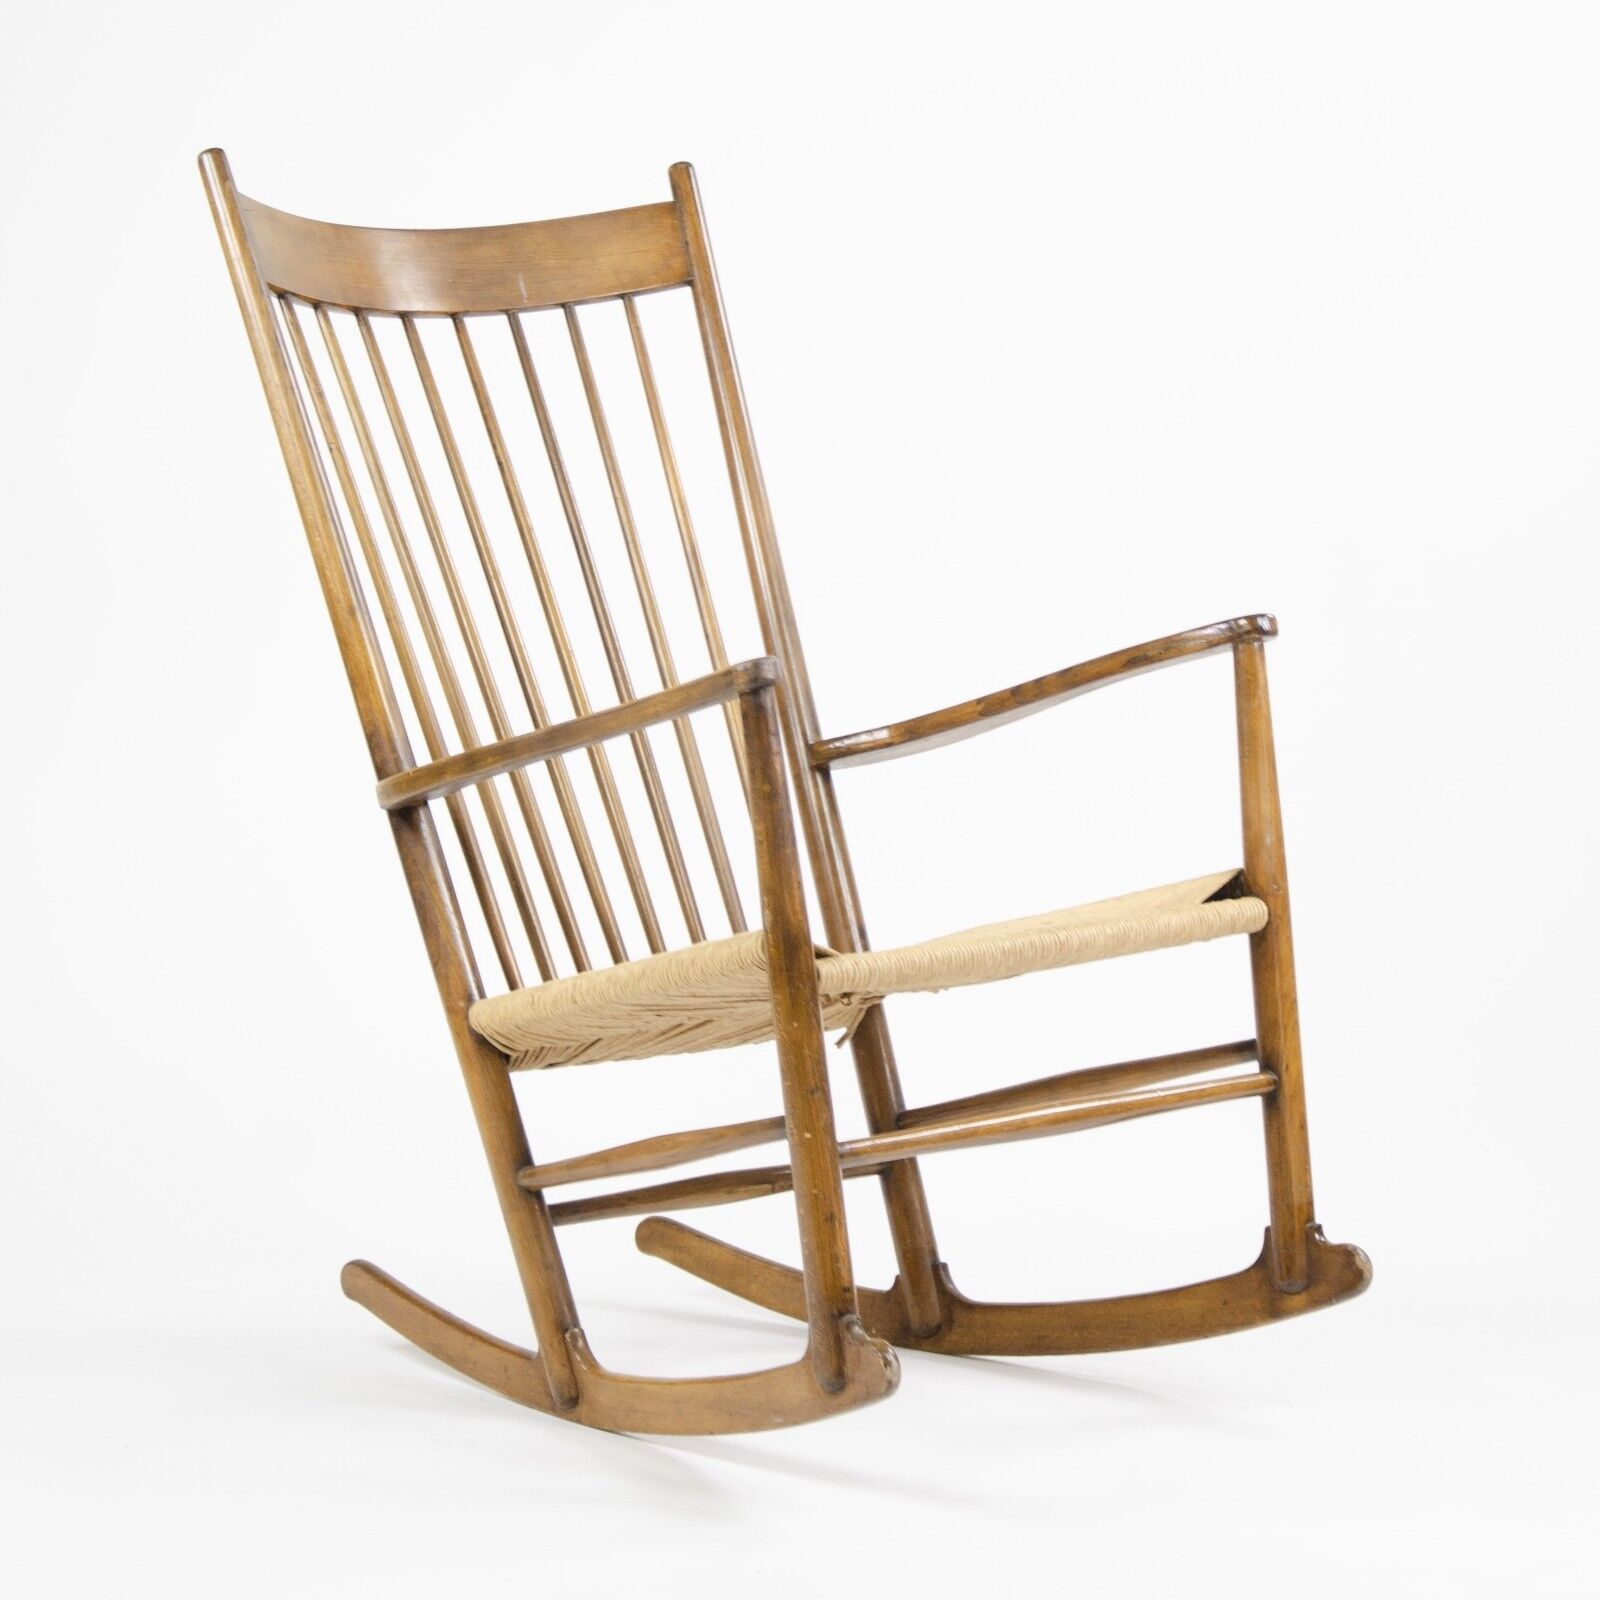 Swell Details About Vintage 1960S Hans Wegner J16 Rocking Chair Mobler Fdb Denmark Eames Knoll Kvist Unemploymentrelief Wooden Chair Designs For Living Room Unemploymentrelieforg